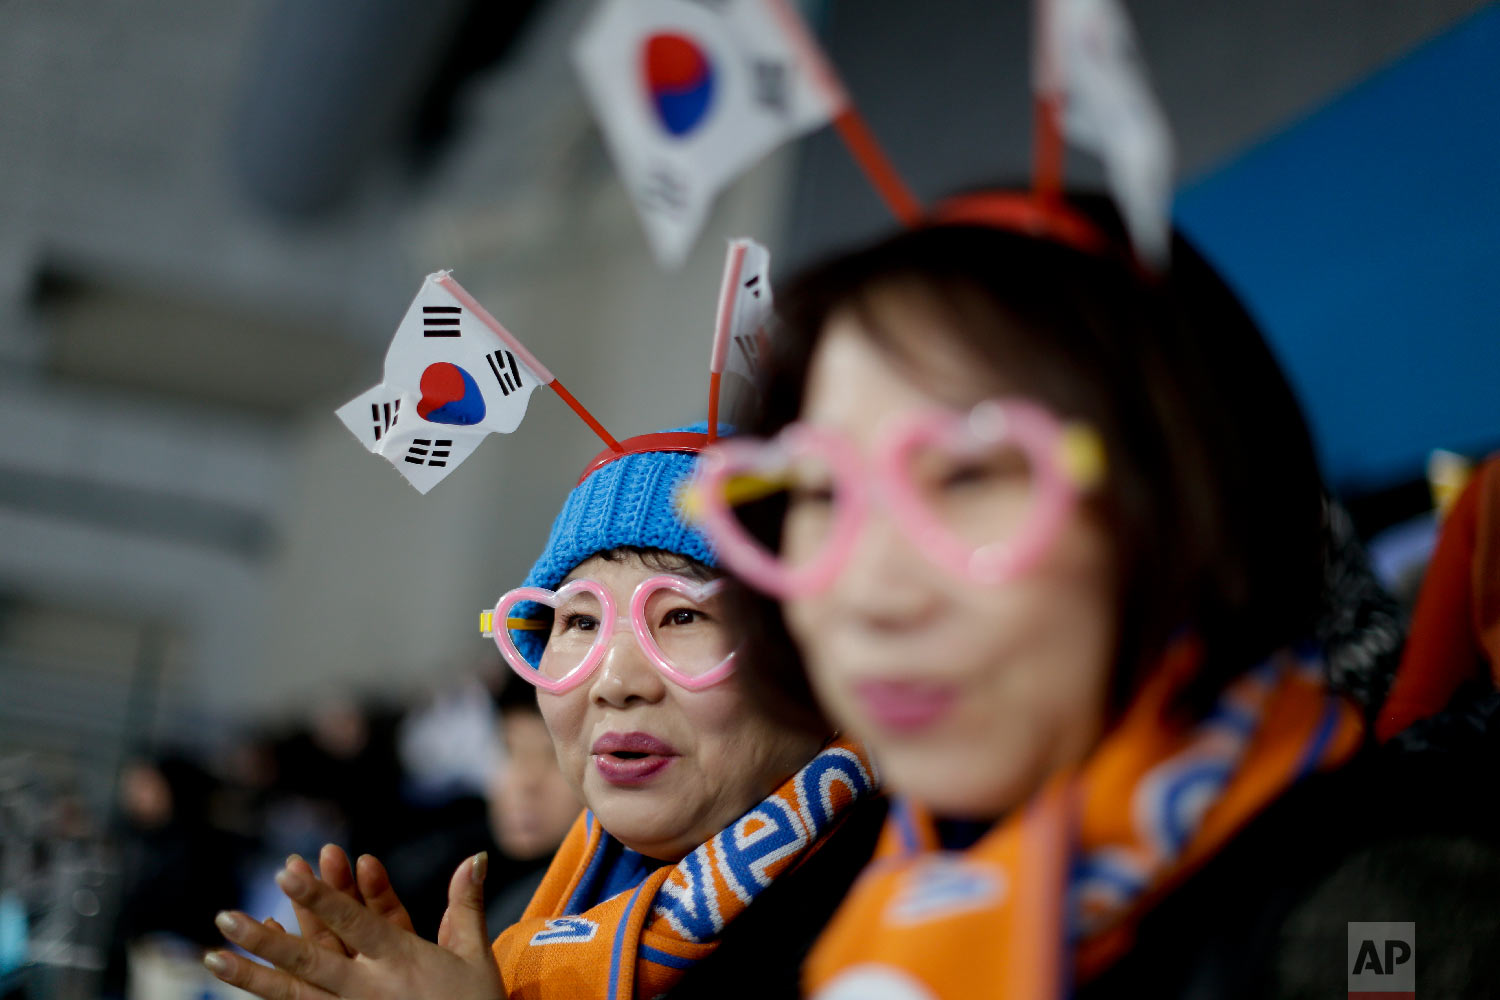 A spectator wearing a South Korean flag watches the mixed doubles semi-final curling match between Russian athletes and Switzerland at the 2018 Winter Olympics in Gangneung, South Korea, Monday, Feb. 12, 2018. (AP Photo/Natacha Pisarenko)